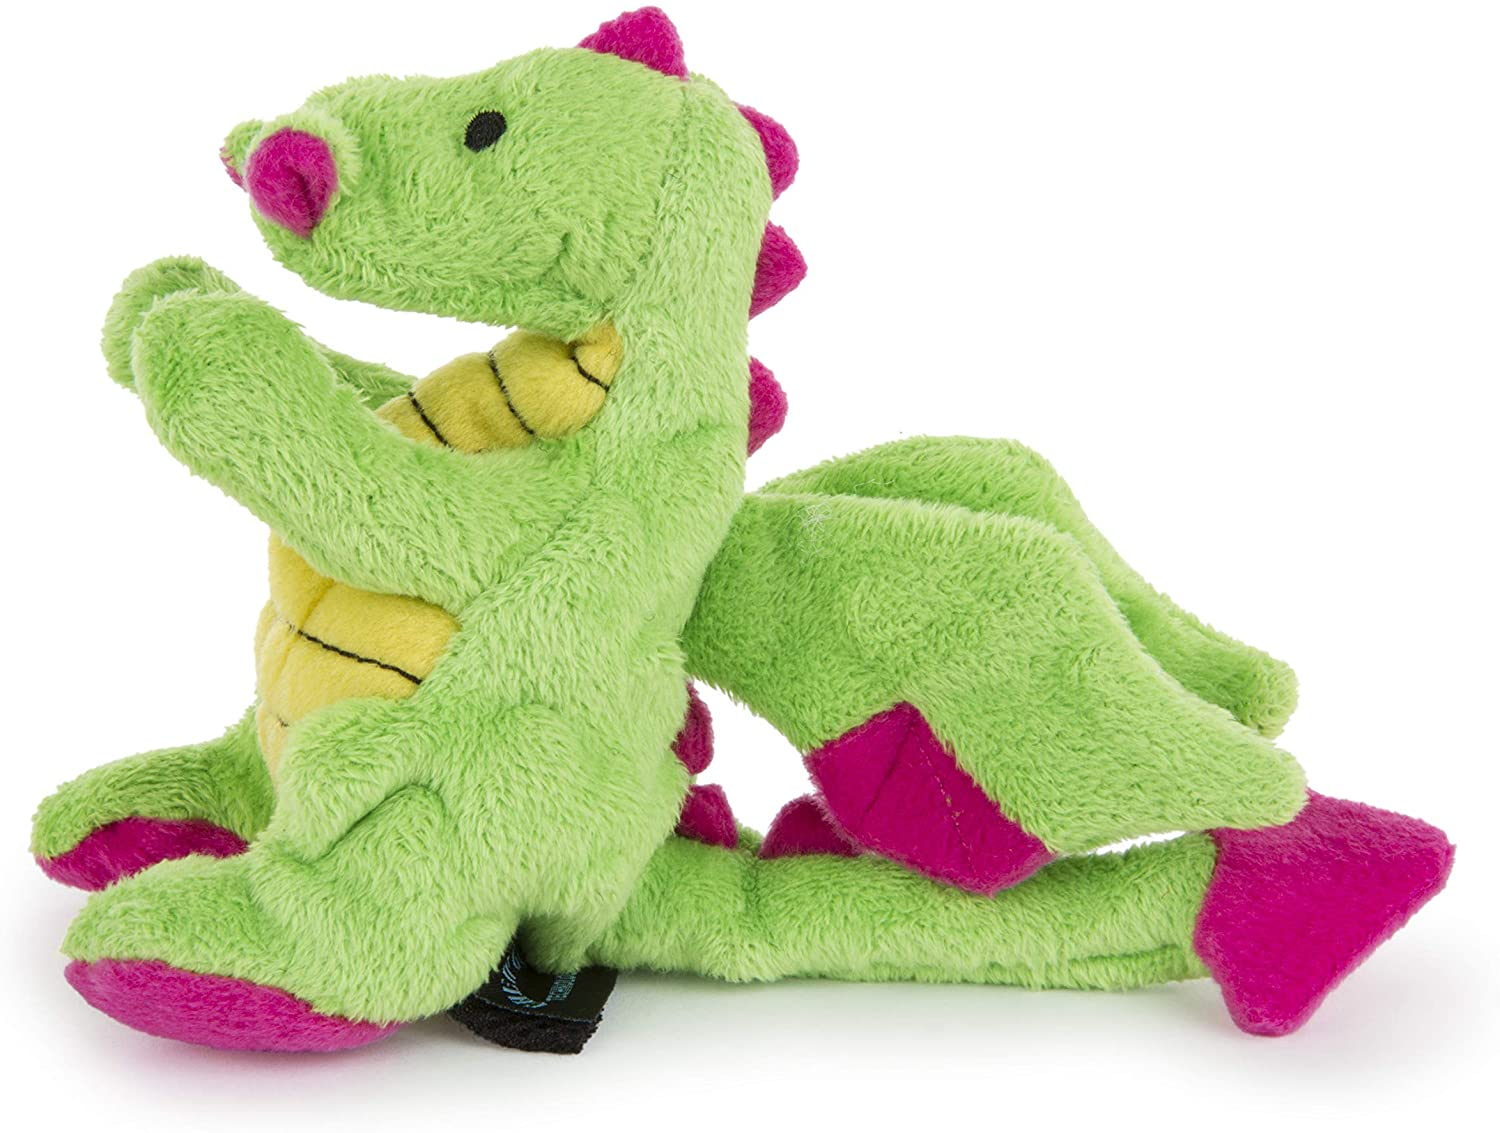 Dragon - Plush Squeaker - Dog Toy - Color Varies